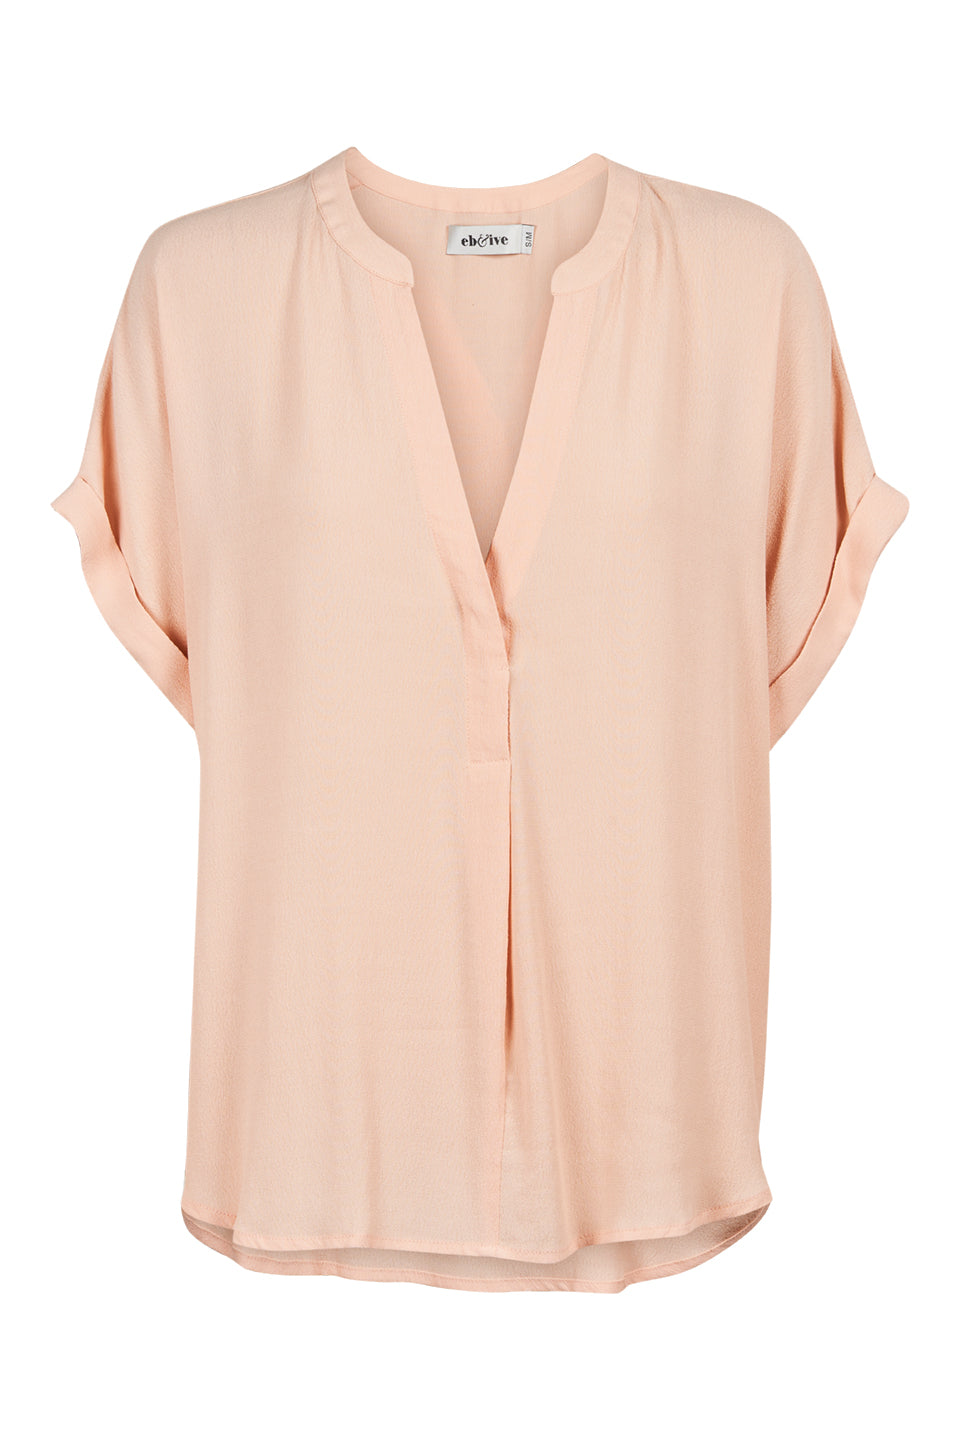 Eb & Ive Savannah Blouse BLUSH